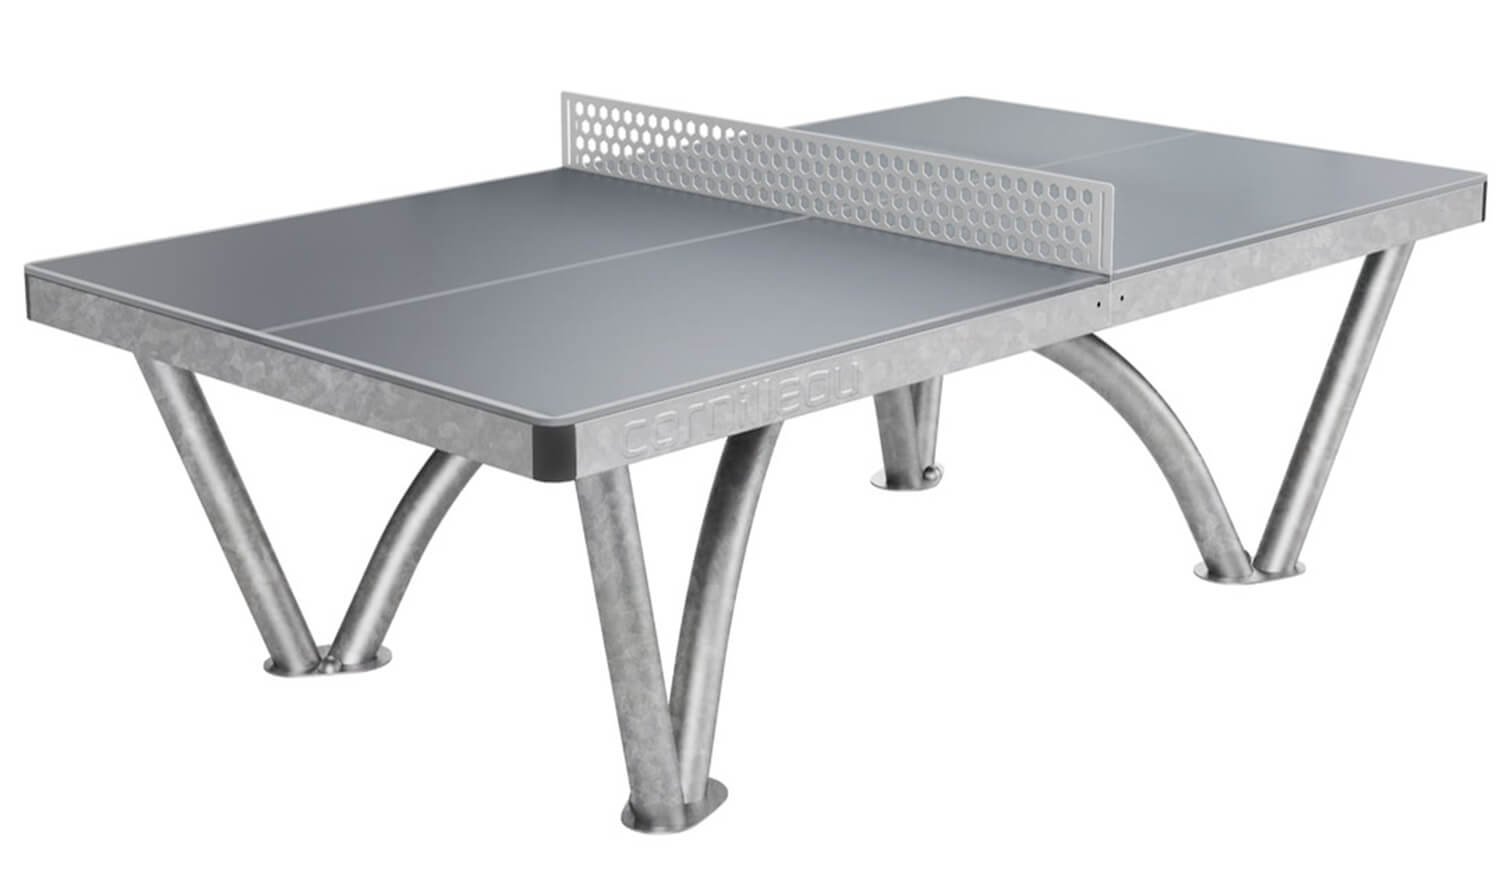 Cornilleau park static outdoor table tennis liberty games - Table ping pong exterieur cornilleau ...